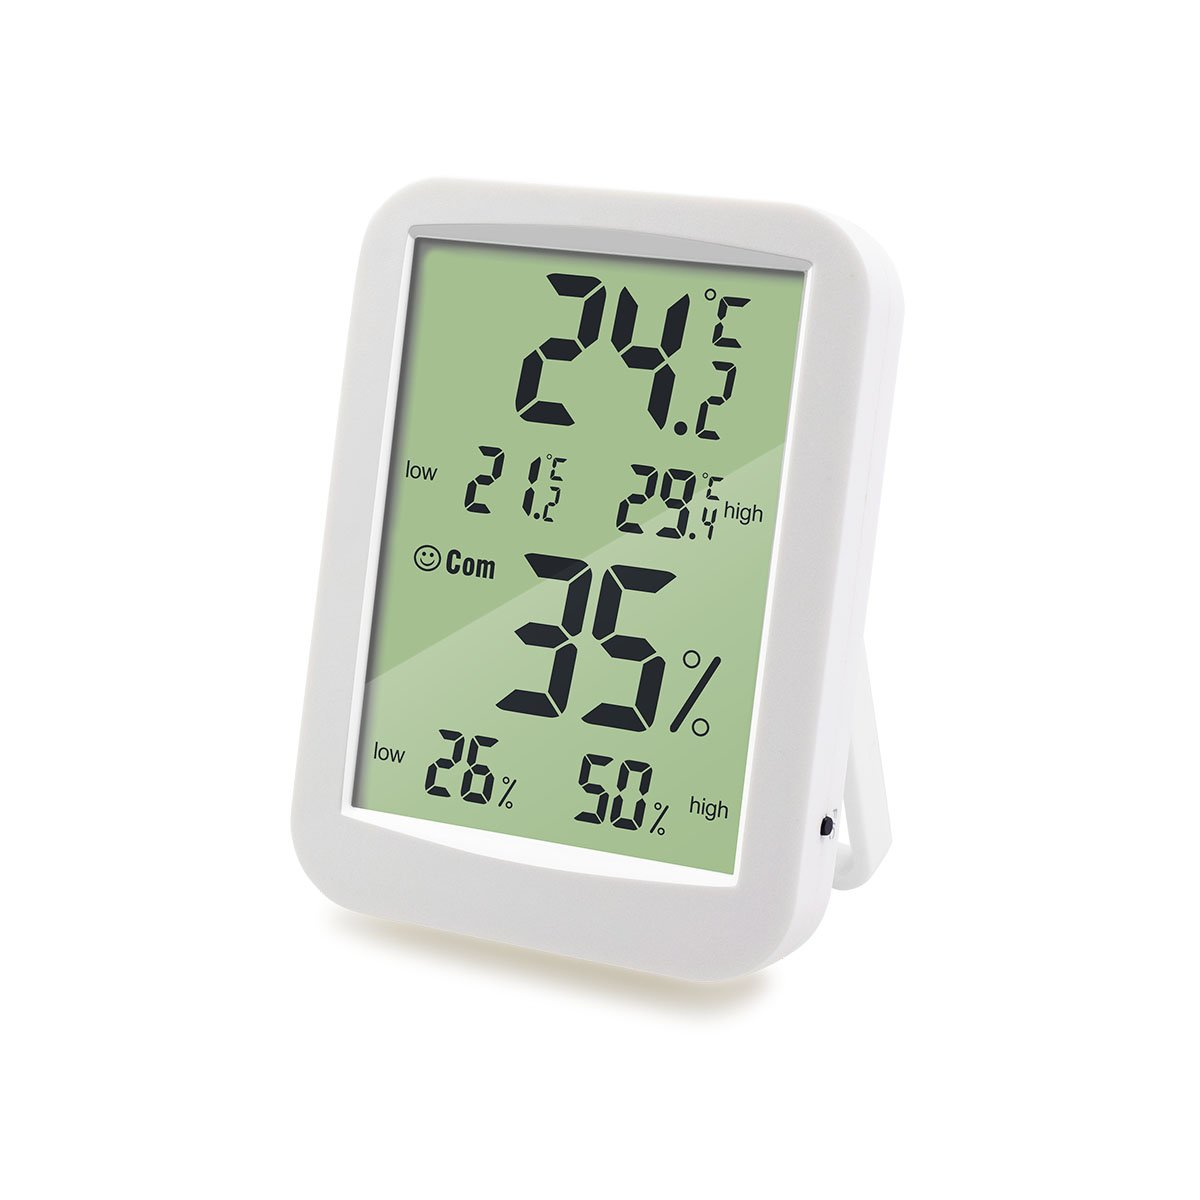 WECOME Temperature Humidity with Record Function Digital Hygrometer Thermometer Humidity Monitor for Home, Office and Baby Room